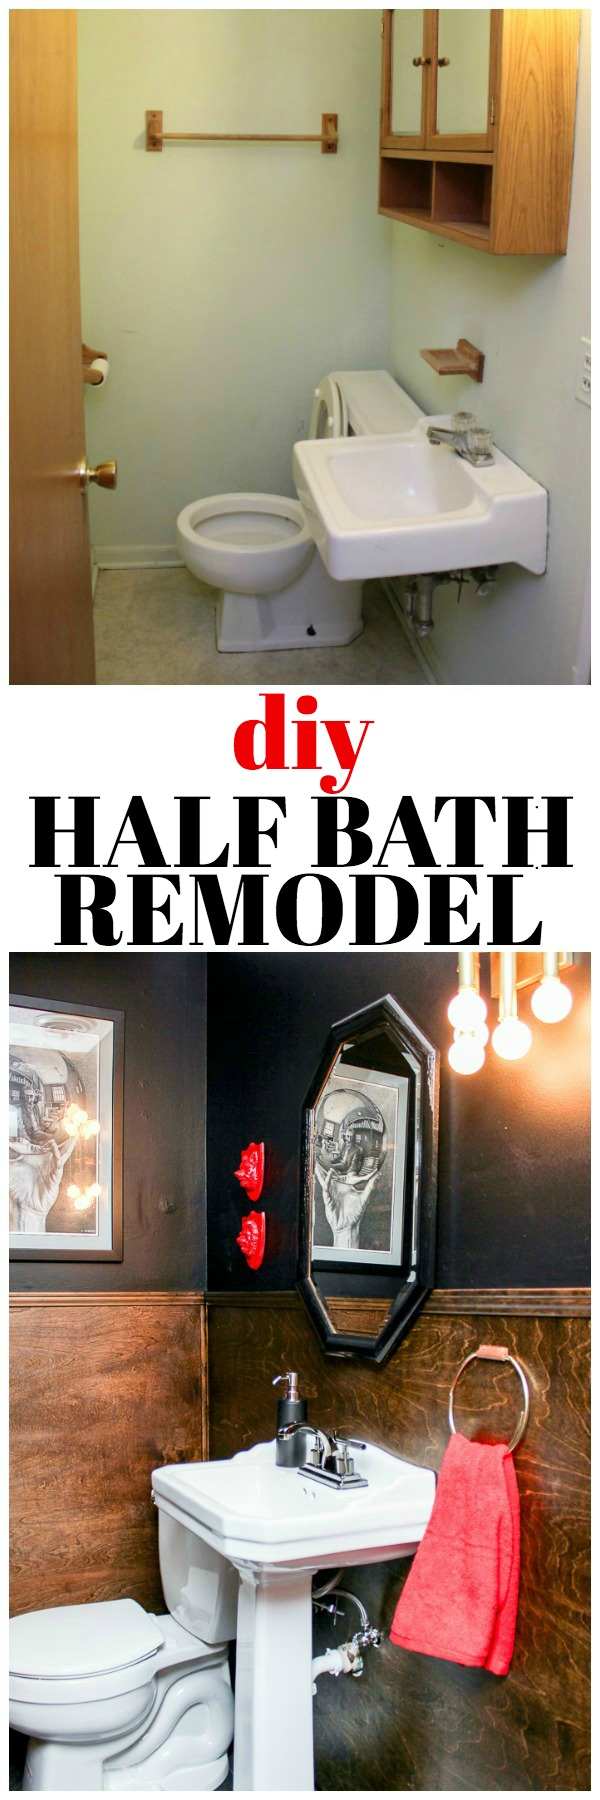 DIY Half Bath Remodel | Half Bathroom Ideas on a Budget | Half Bathroom Decor | Half Bath Decor | Bathroom Ideas | Bathroom Remodel